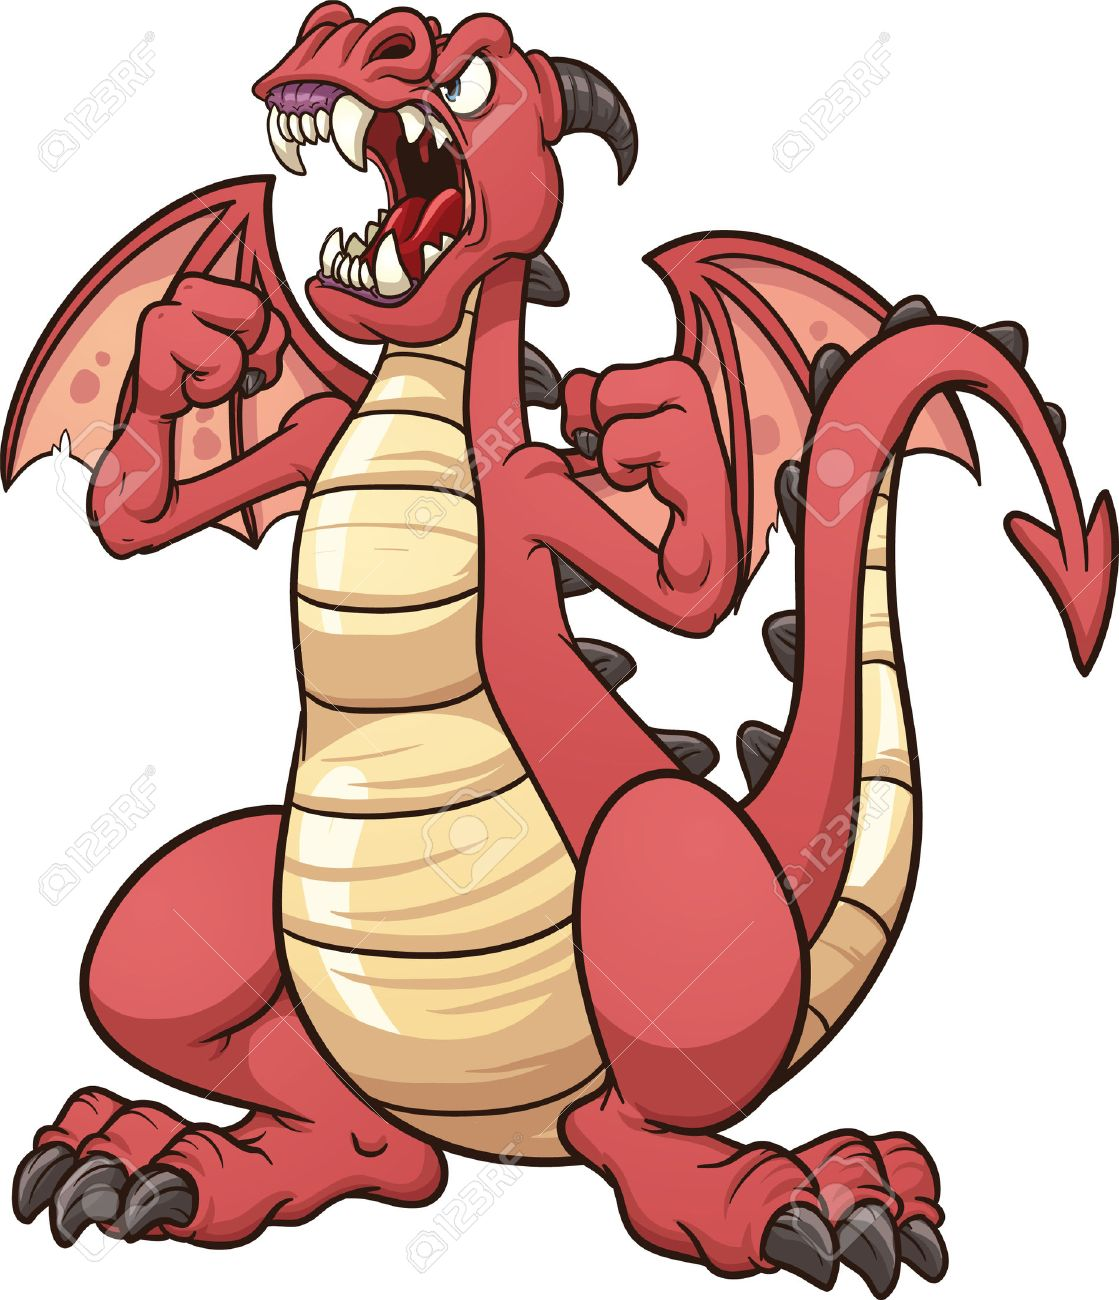 1119x1300 Angry Cartoon Dragon Vector Clip Art Illustration With Simple